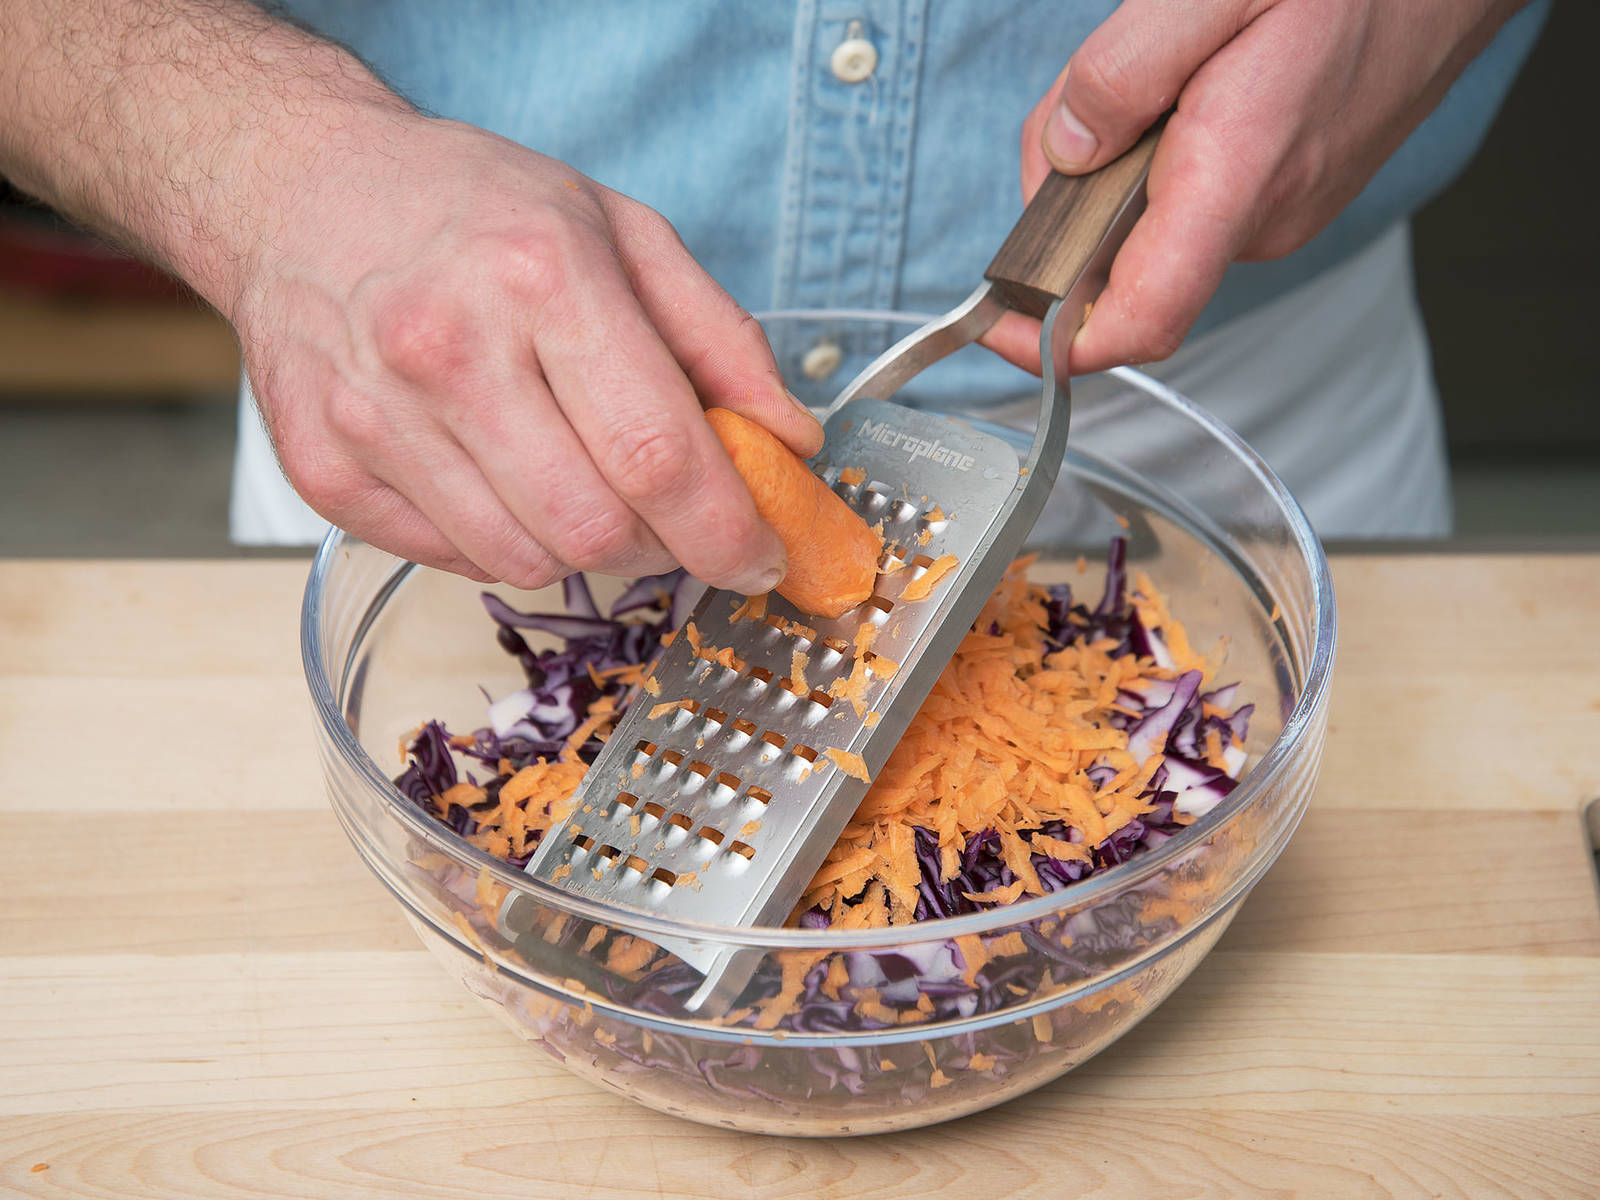 Remove stem and outer leaves from the red cabbage. Roughly cut and grate it into a large bowl. Wash and grate carrots, then add them to the red cabbage.